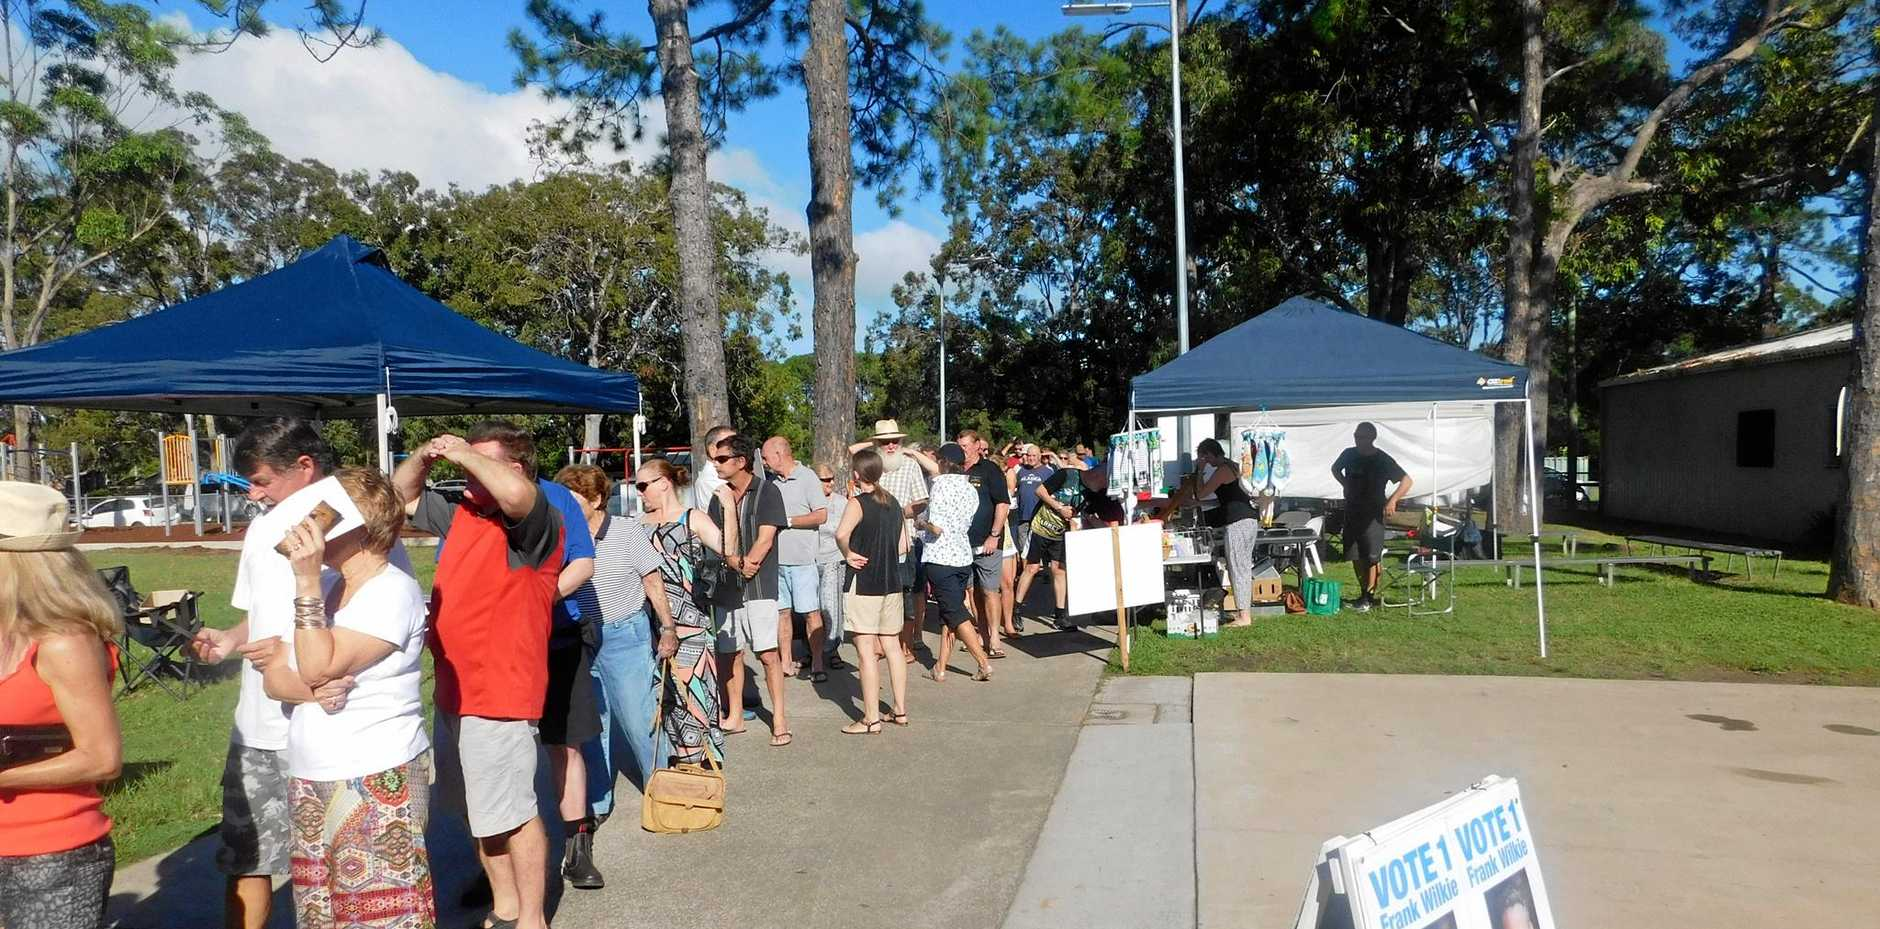 Noosa votes after getting its council back.